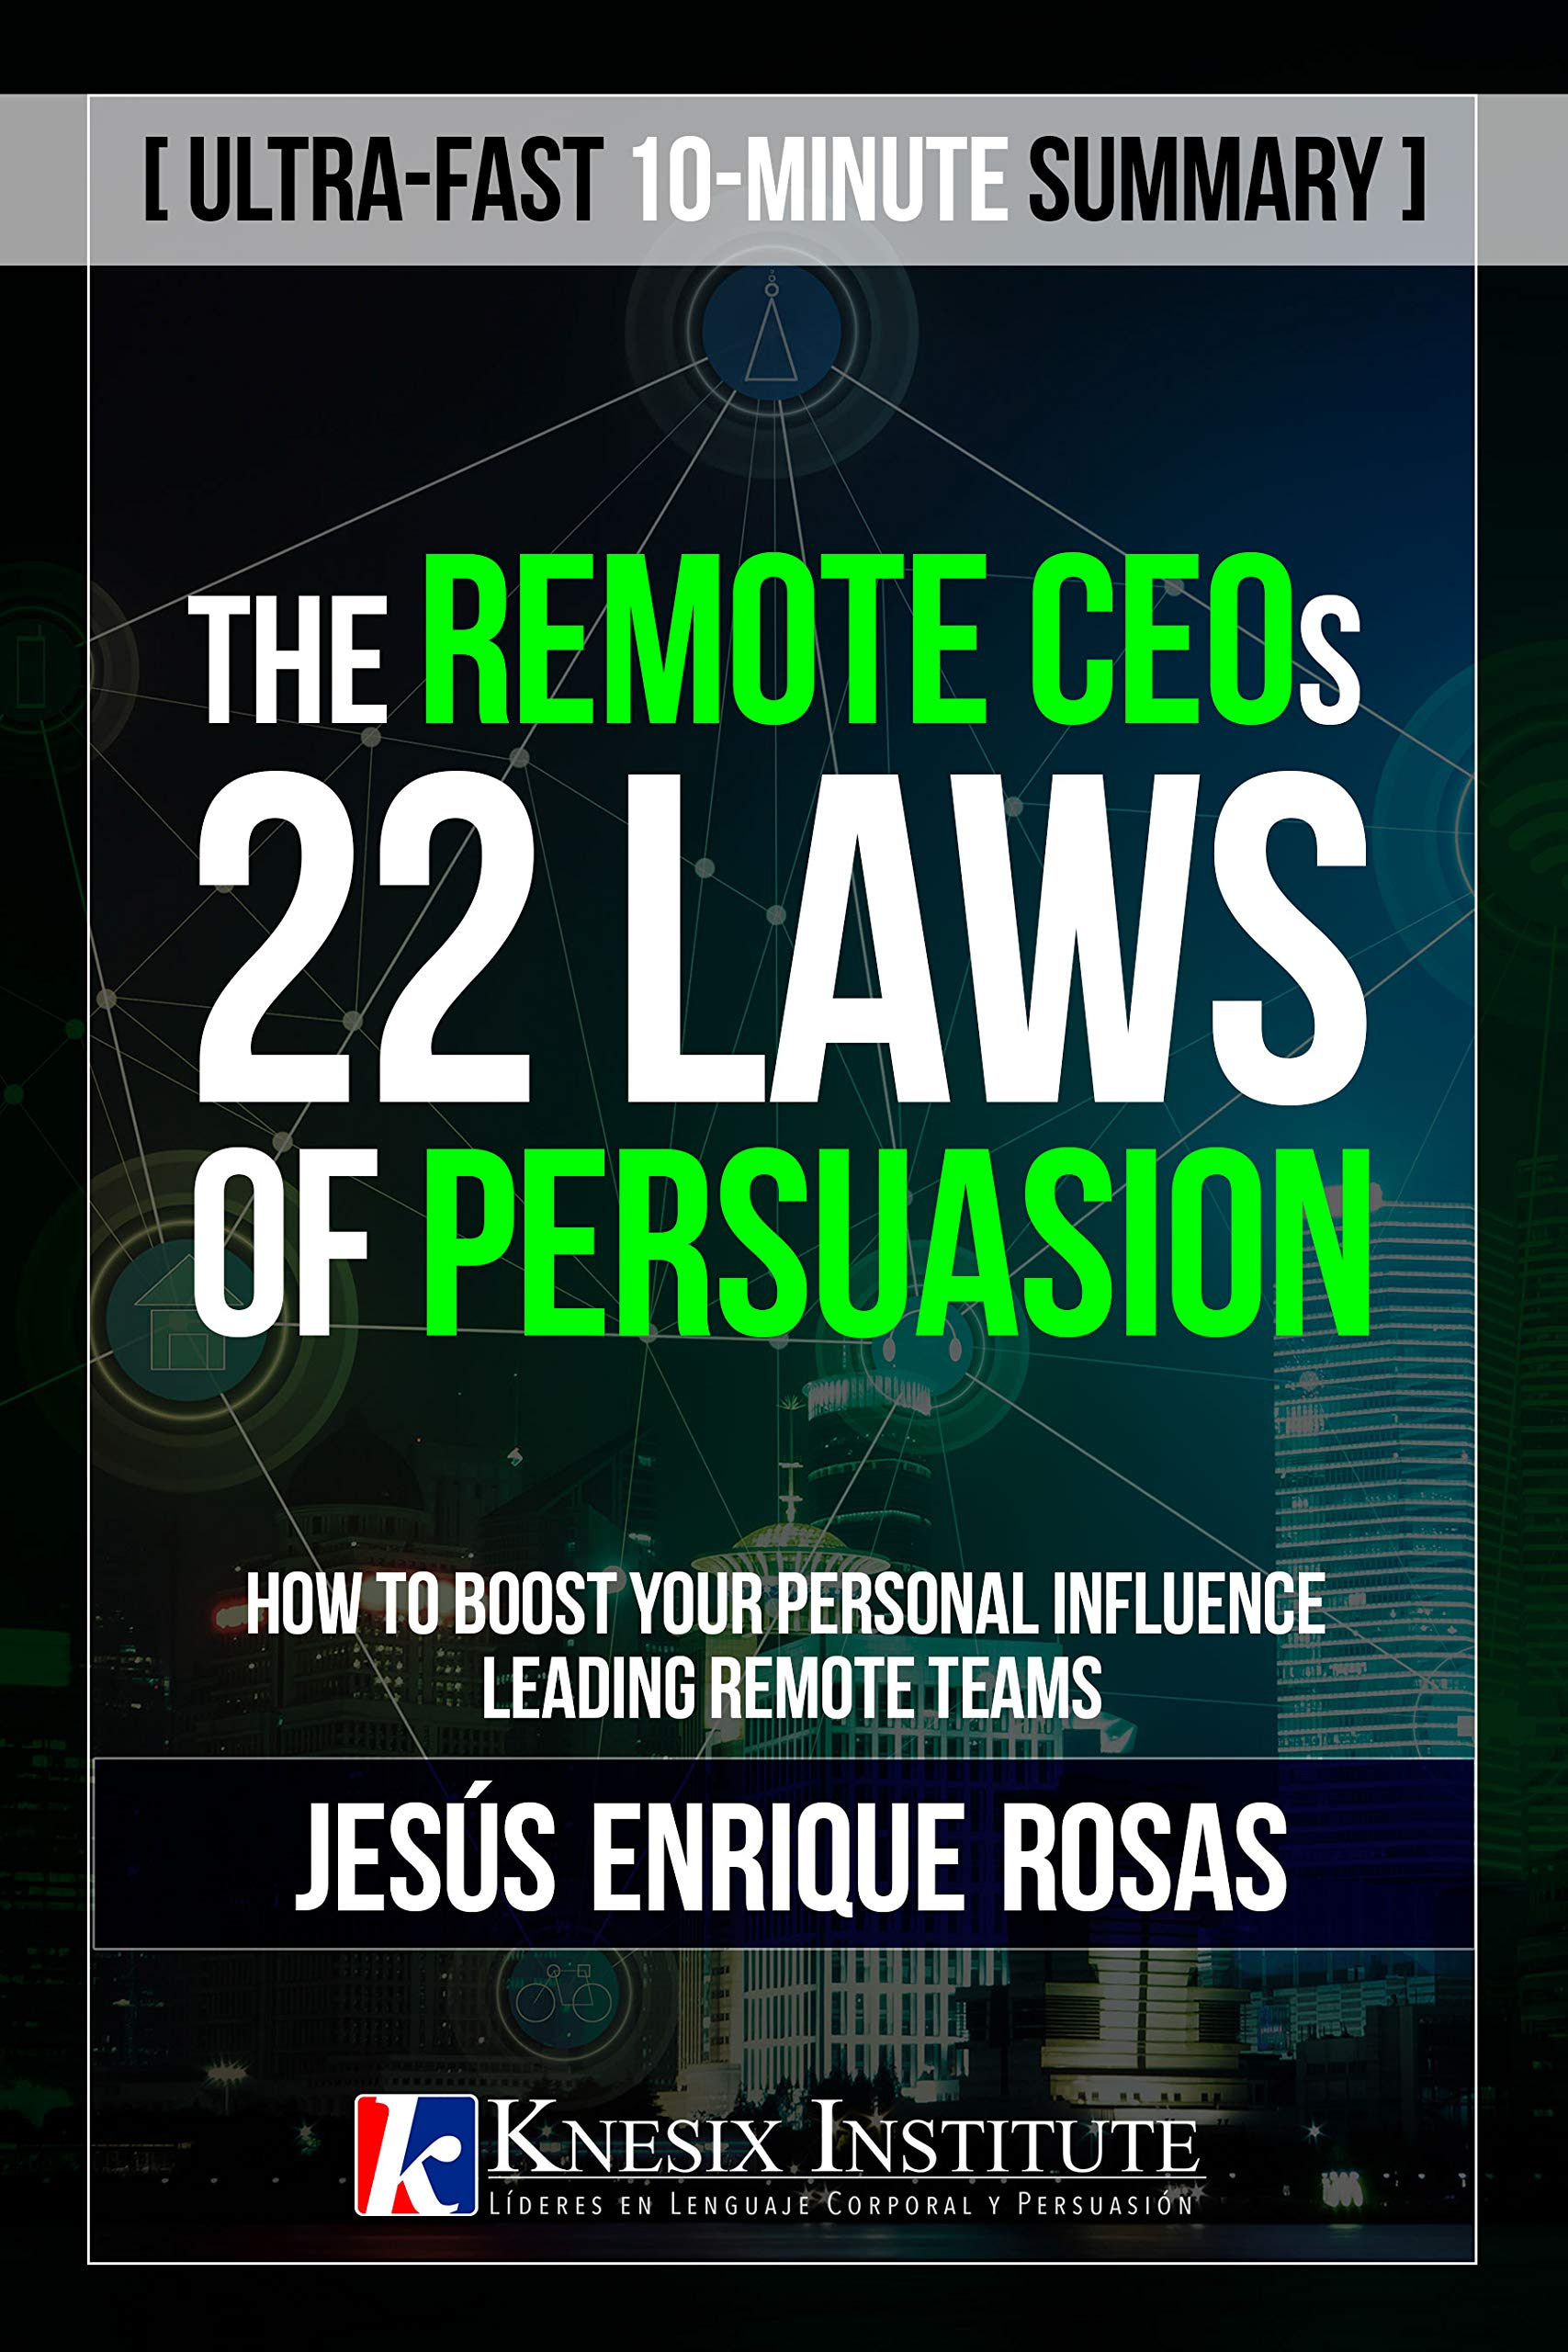 The Remote CEO's 22 Laws of Persuasion: How to boost your personal influence leading remote teams